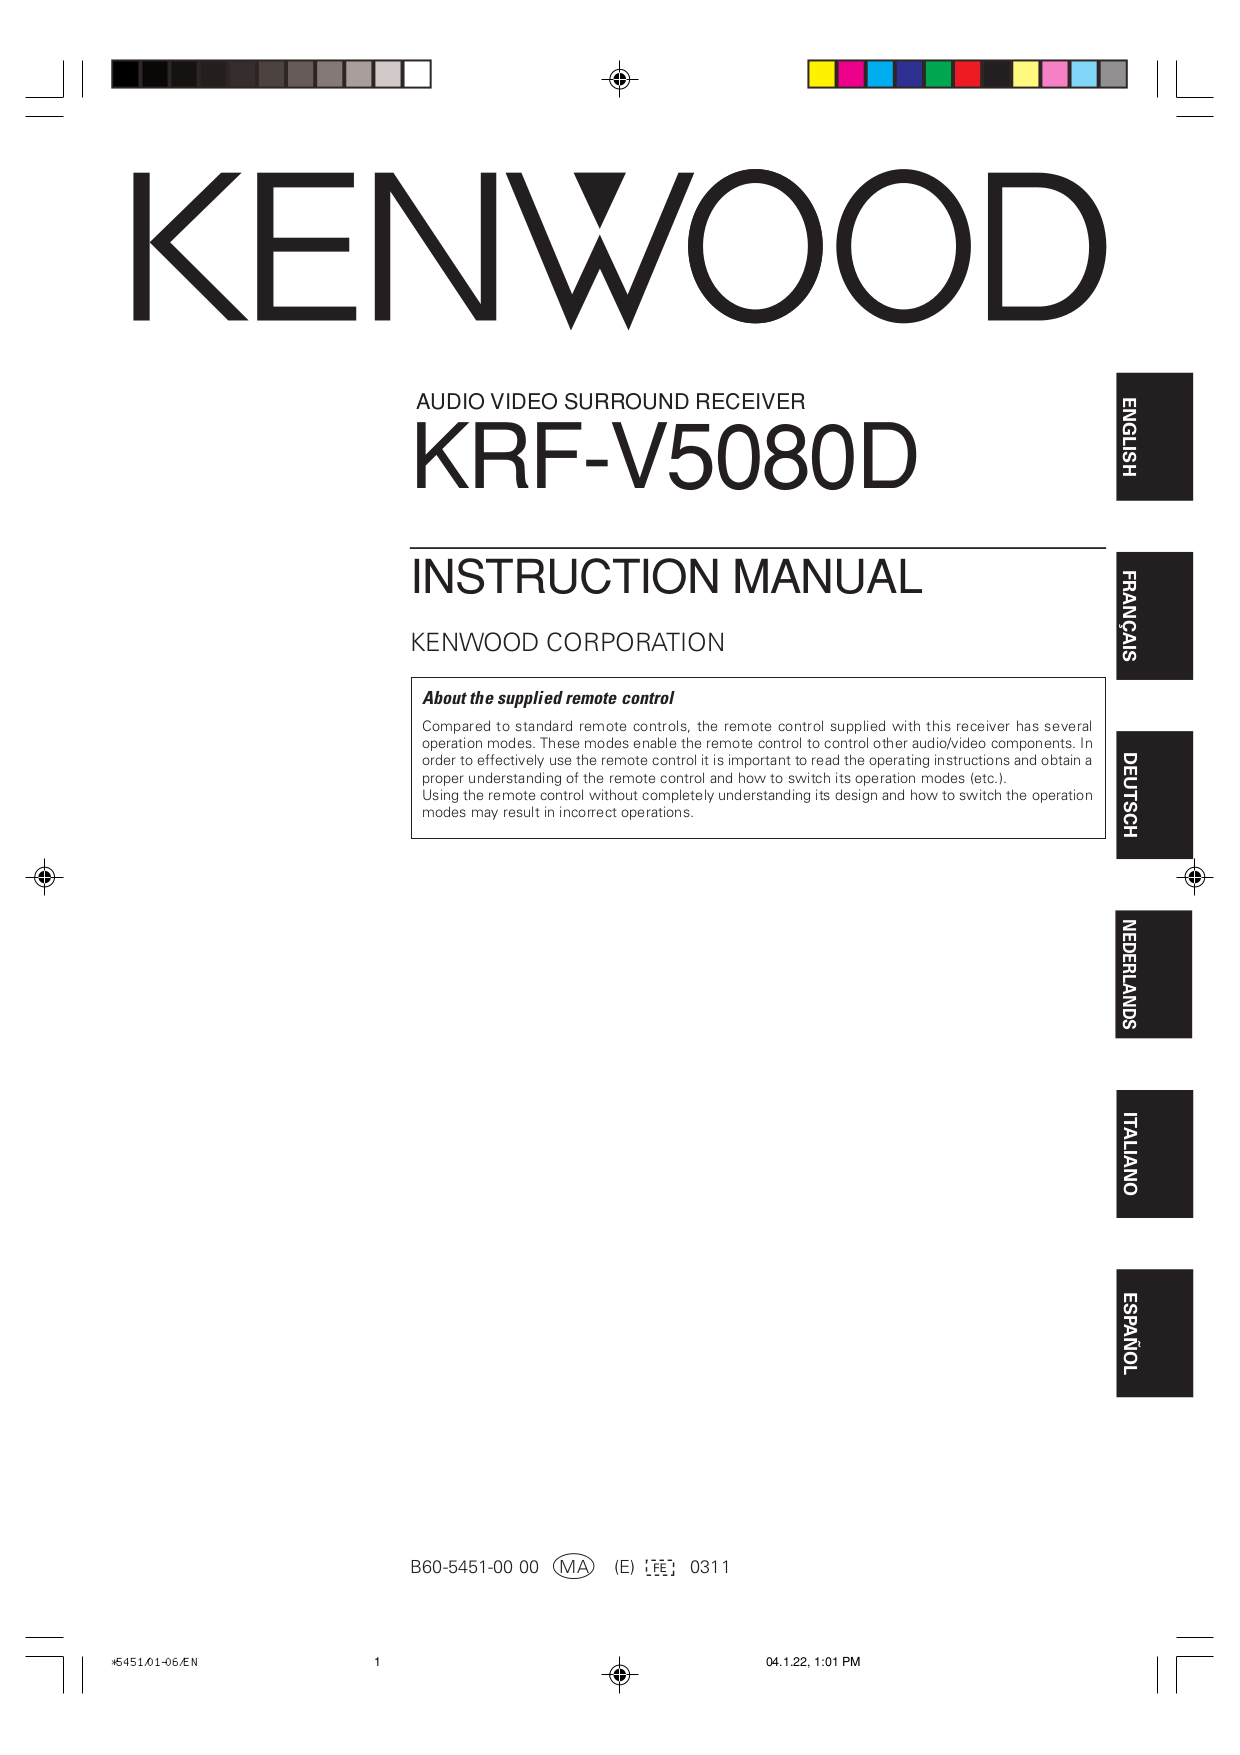 Download free pdf for Kenwood KRF-V5080D Receiver manual